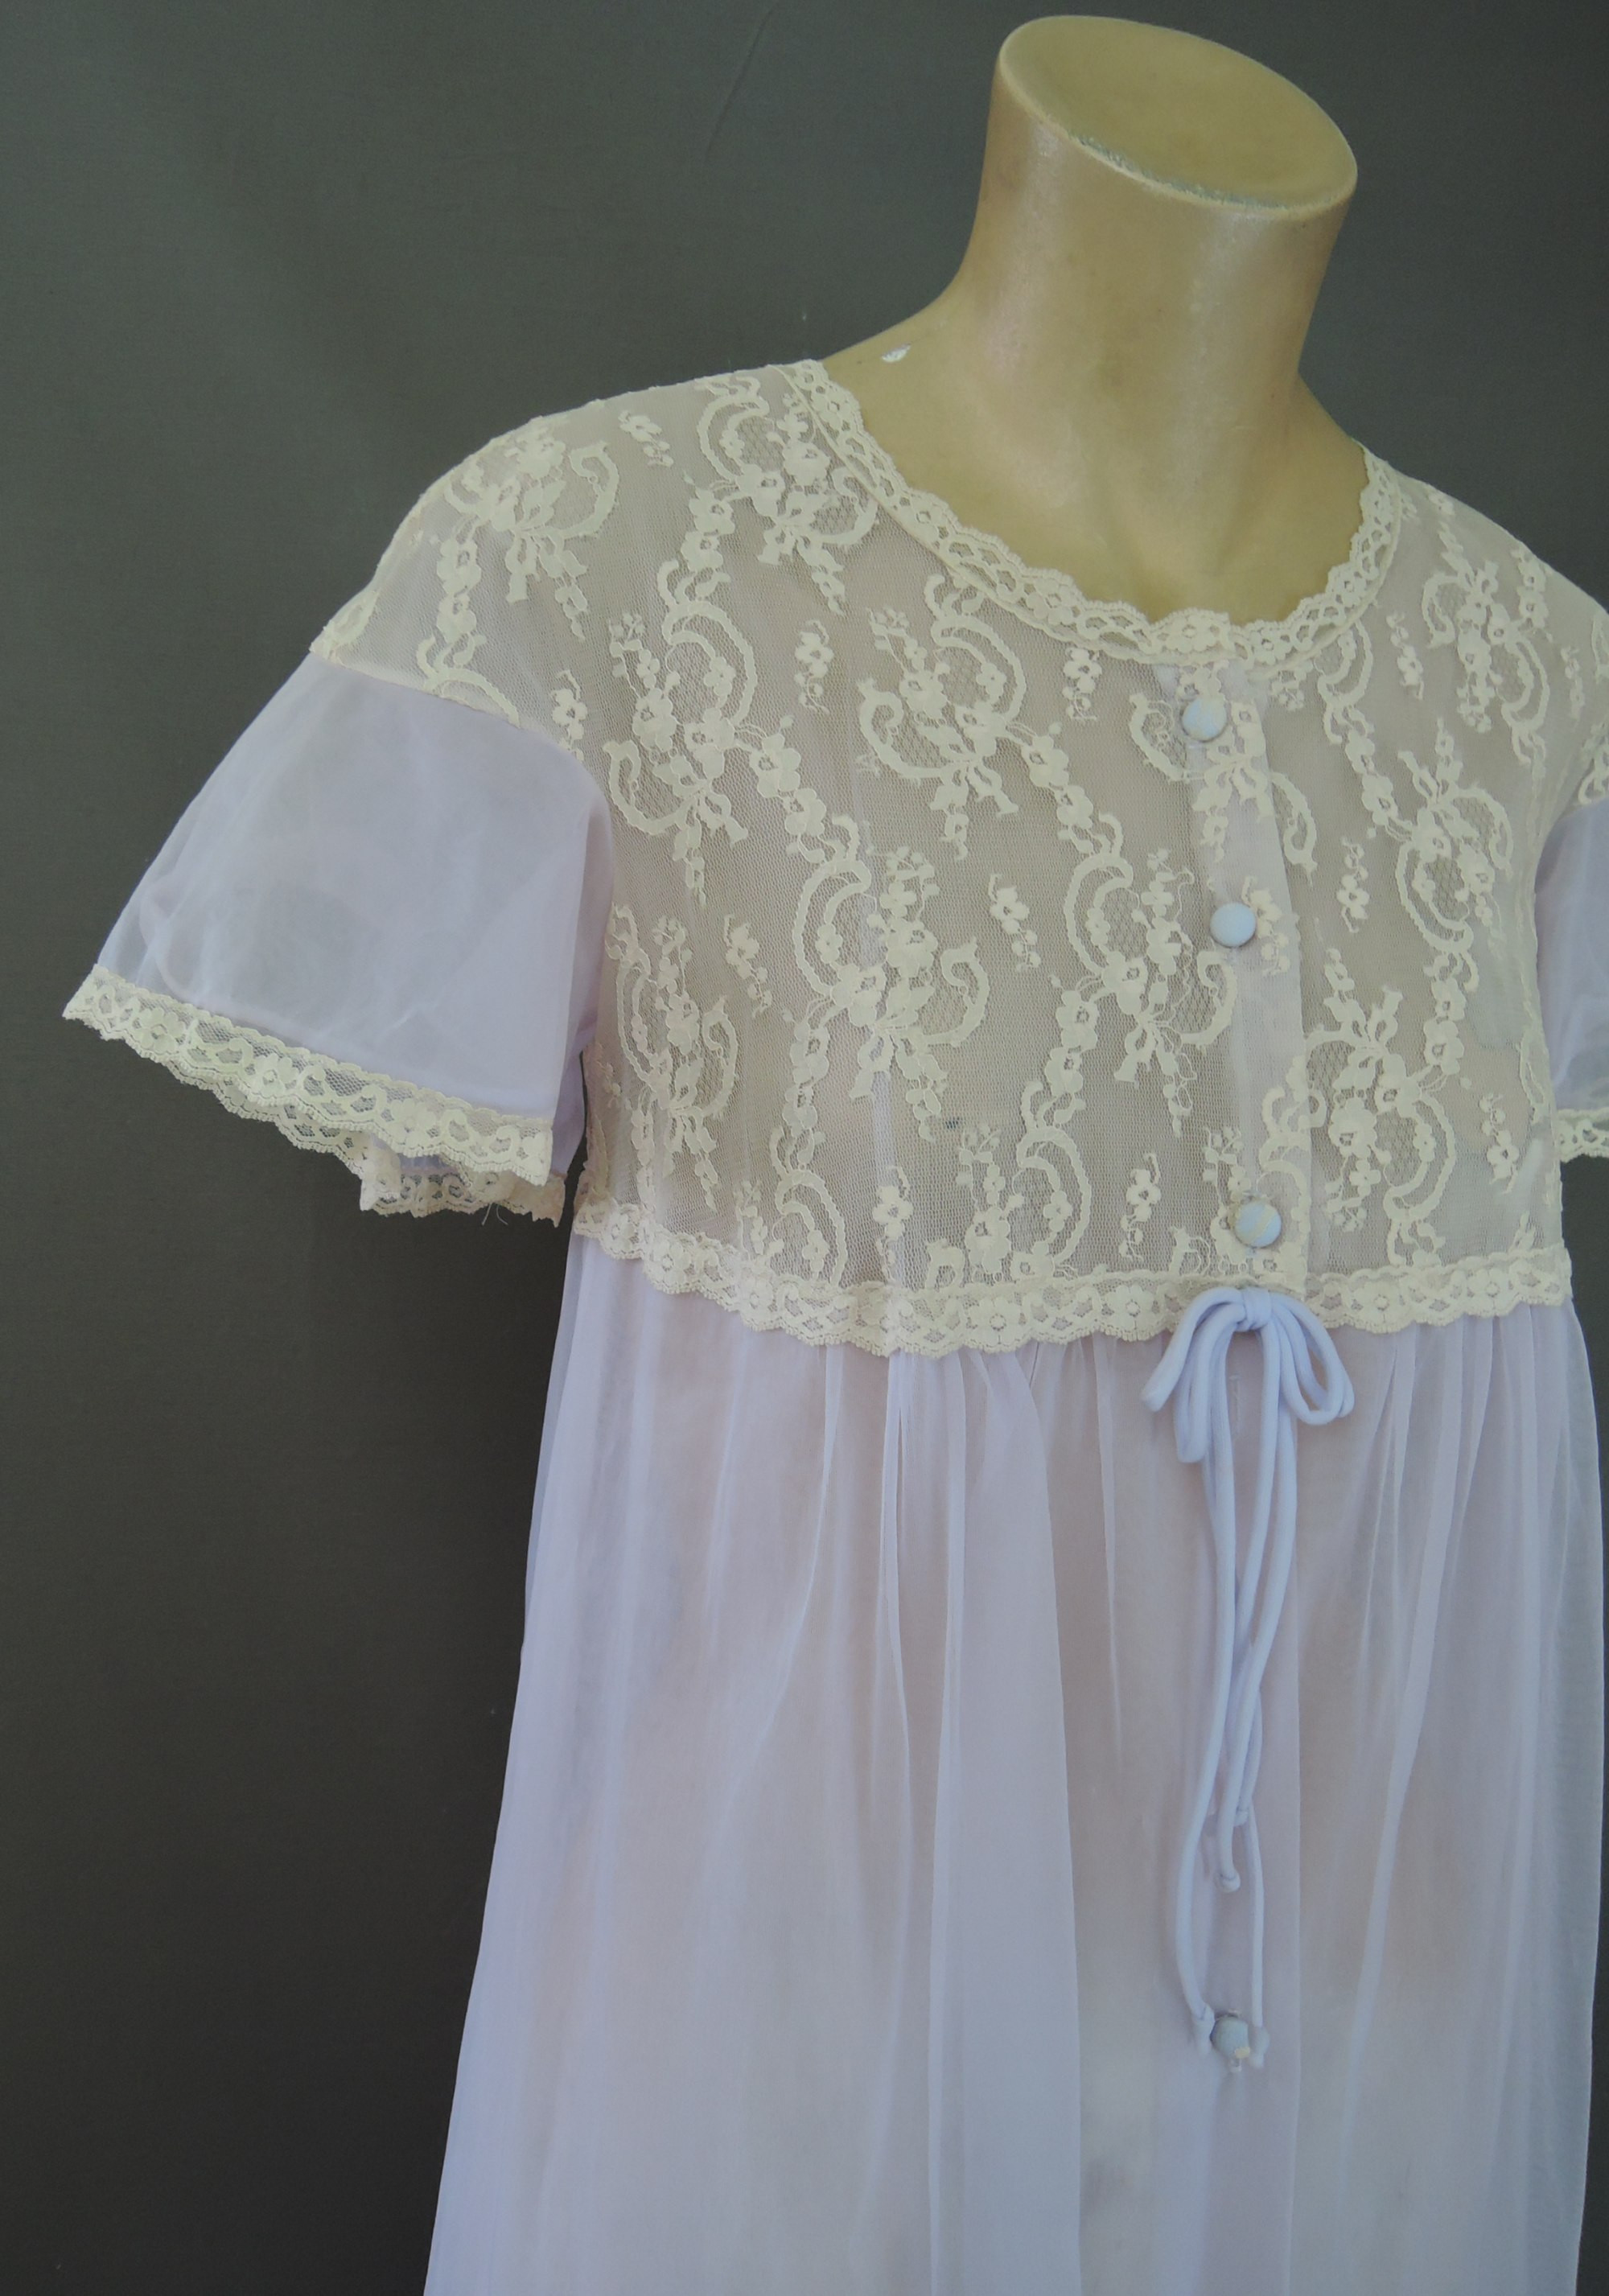 Vintage Sheer Lavender Robe with Ivory Lace, 1960s, 32 inch bust